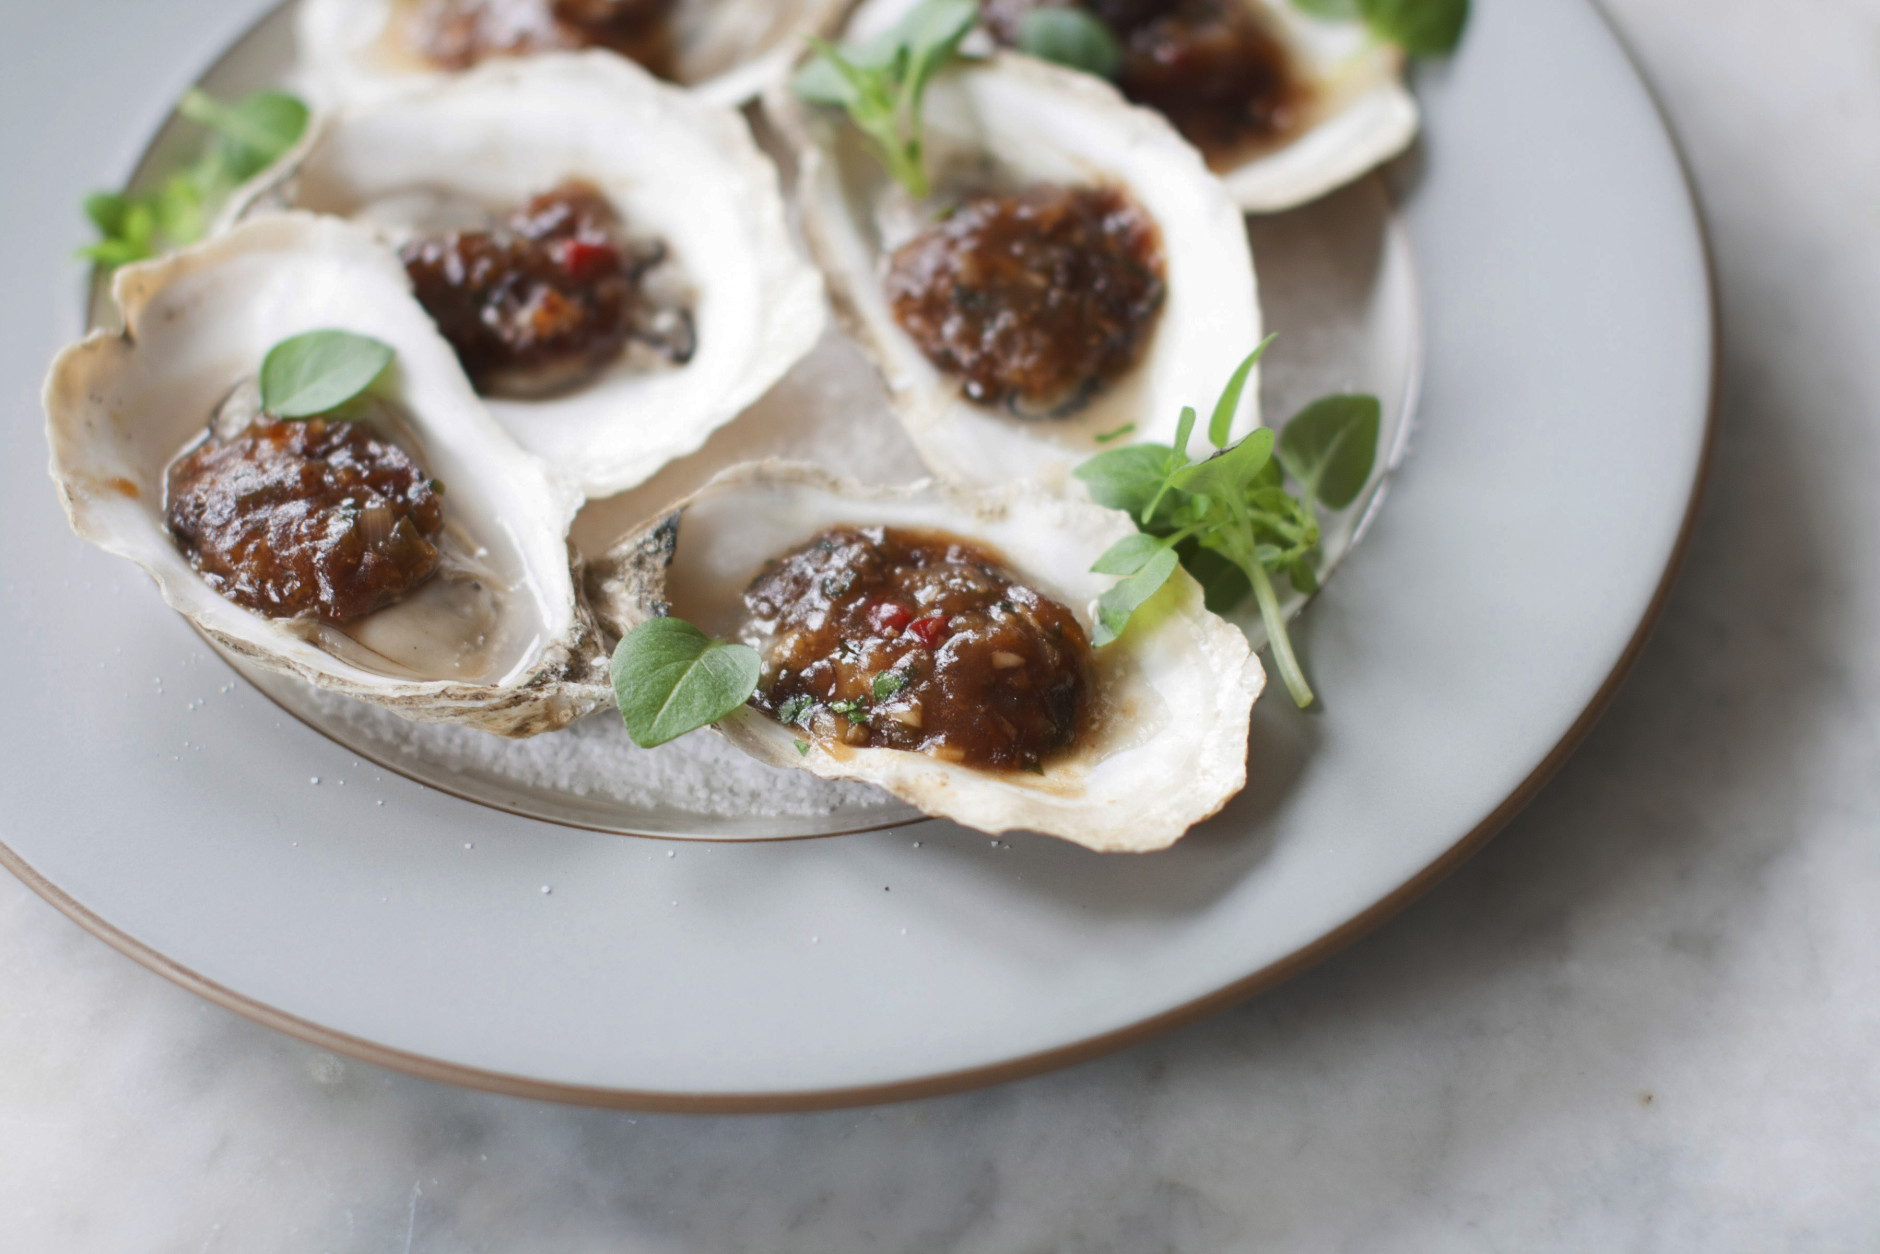 This Apr. 7, 2014 photo shows grilled oysters with fermented black beans and chili garlic in Concord, N.H. This recipe was inspired by chefs at the South Beach Wine and Food Festival in Miami Beach, Fla. (AP Photo/Matthew Mead)